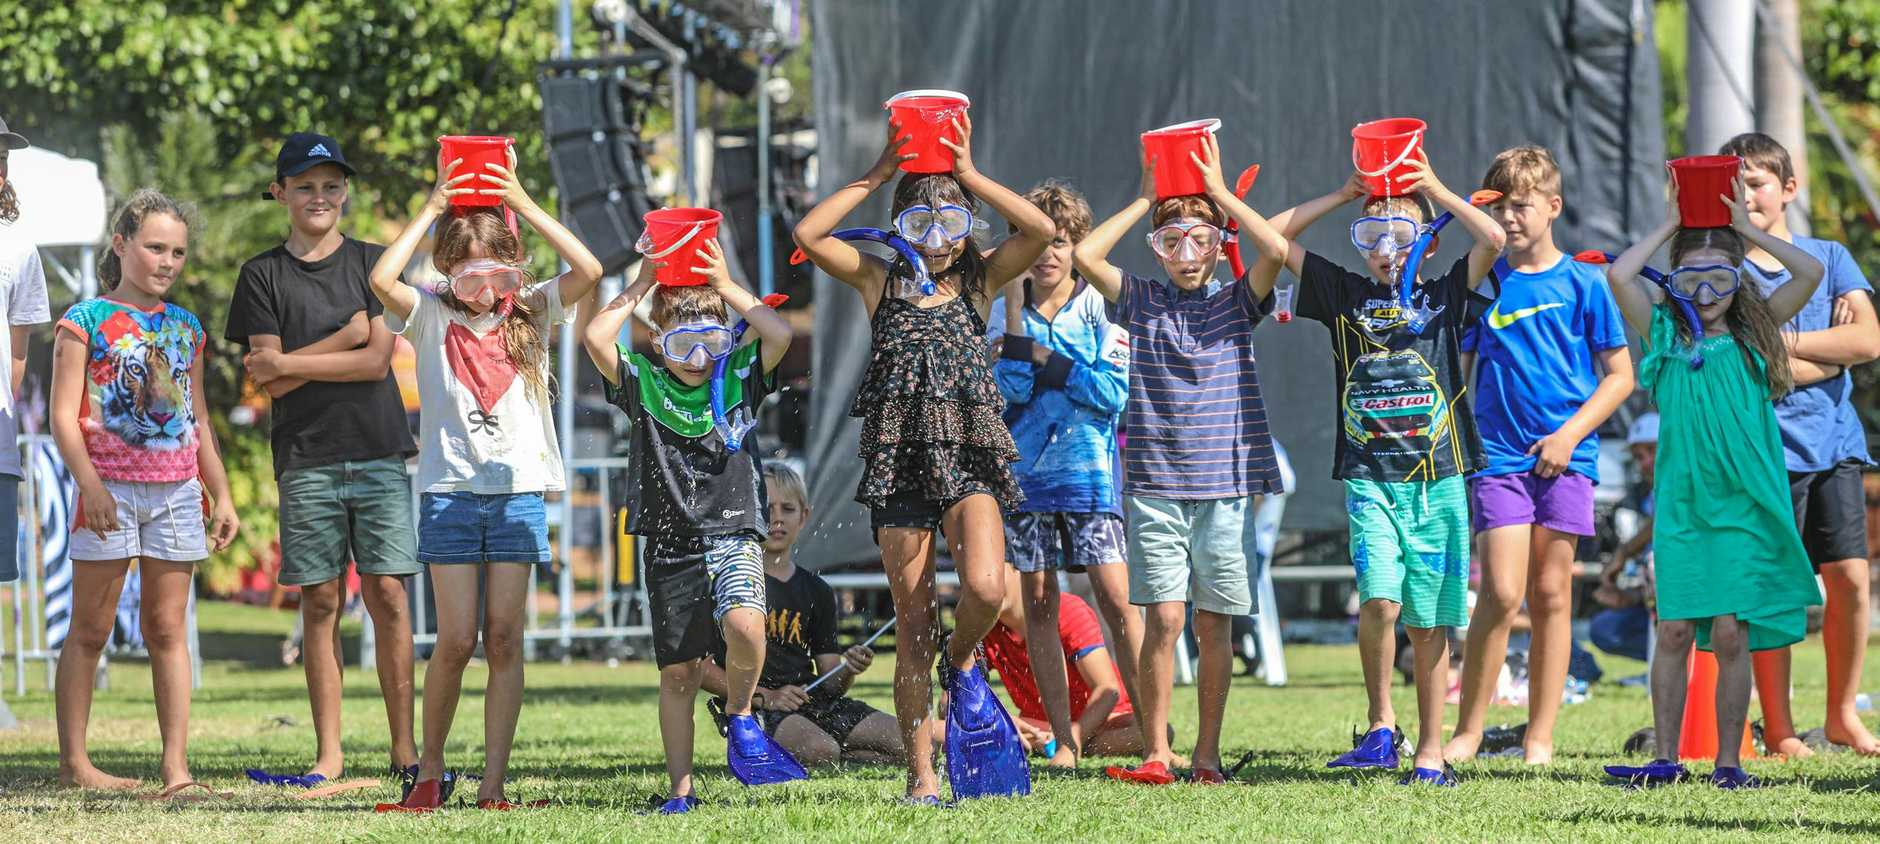 GREAT FUN: There's an environmental reef-themed aspect to many of the Whitsunday Transit Family Fun Day games.